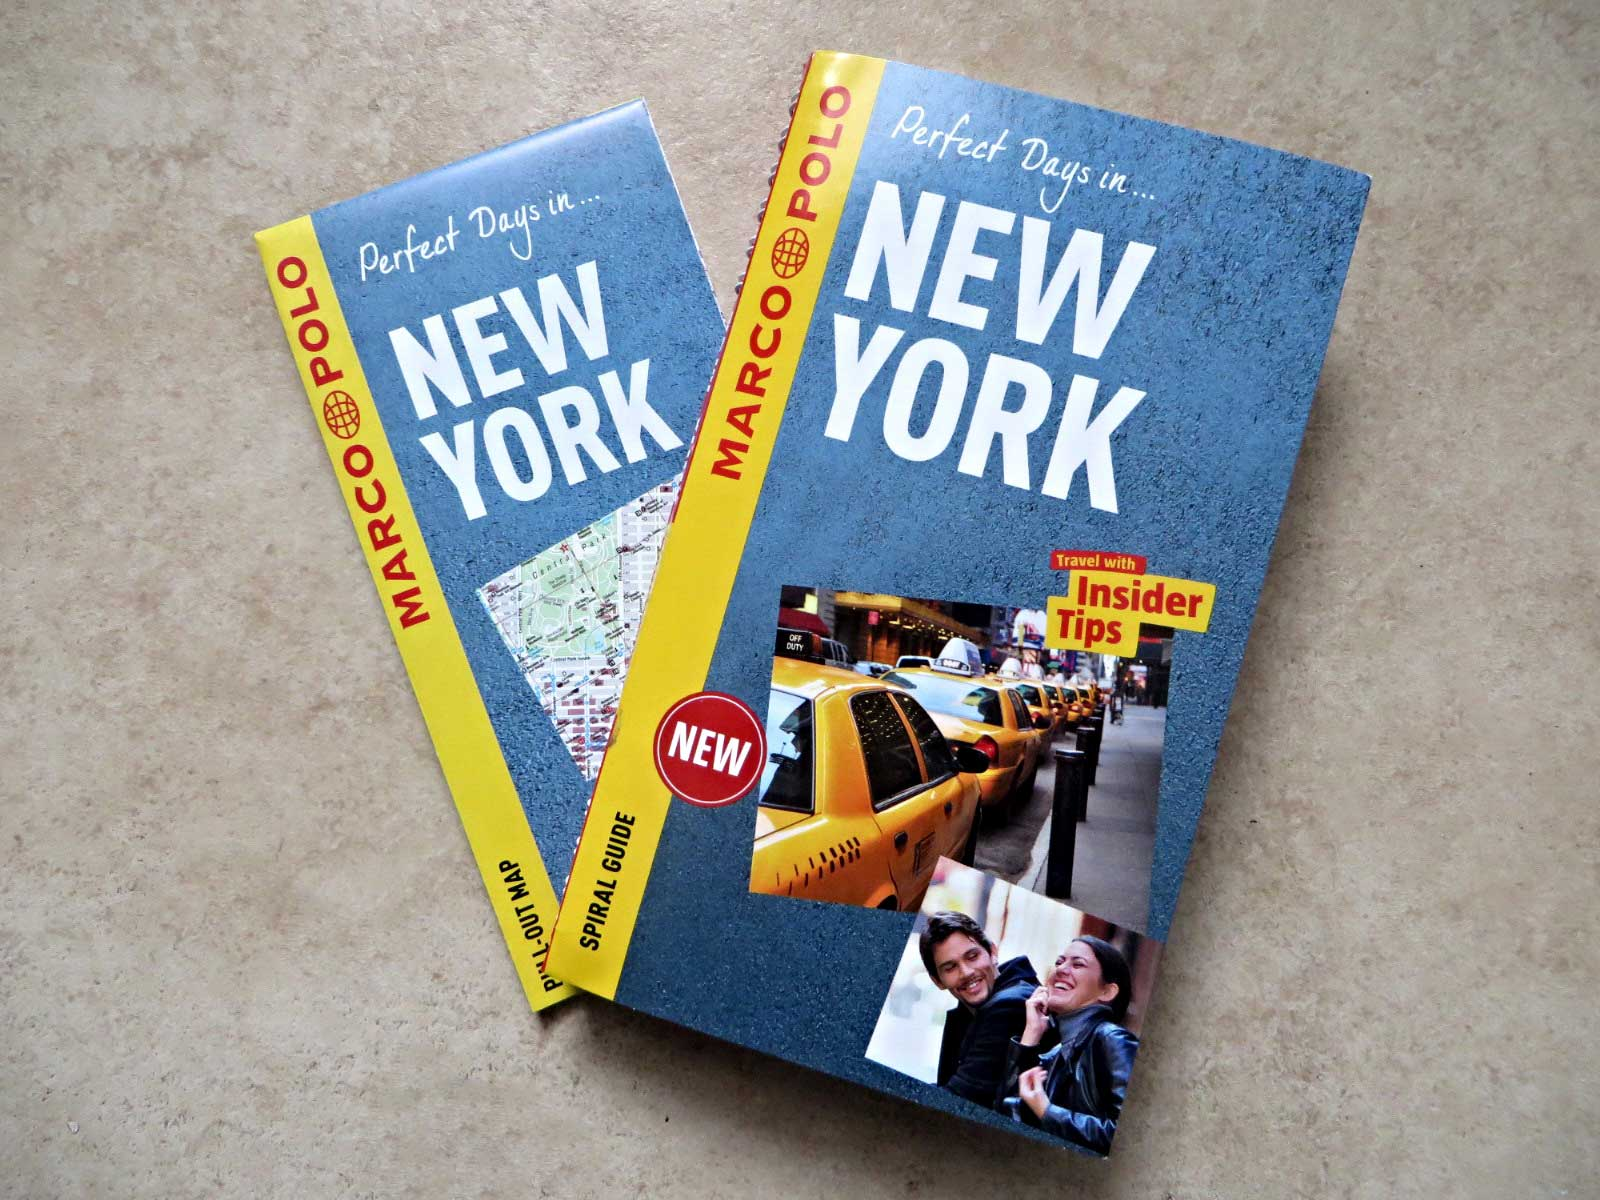 Marco-Polo-New-York-Guide